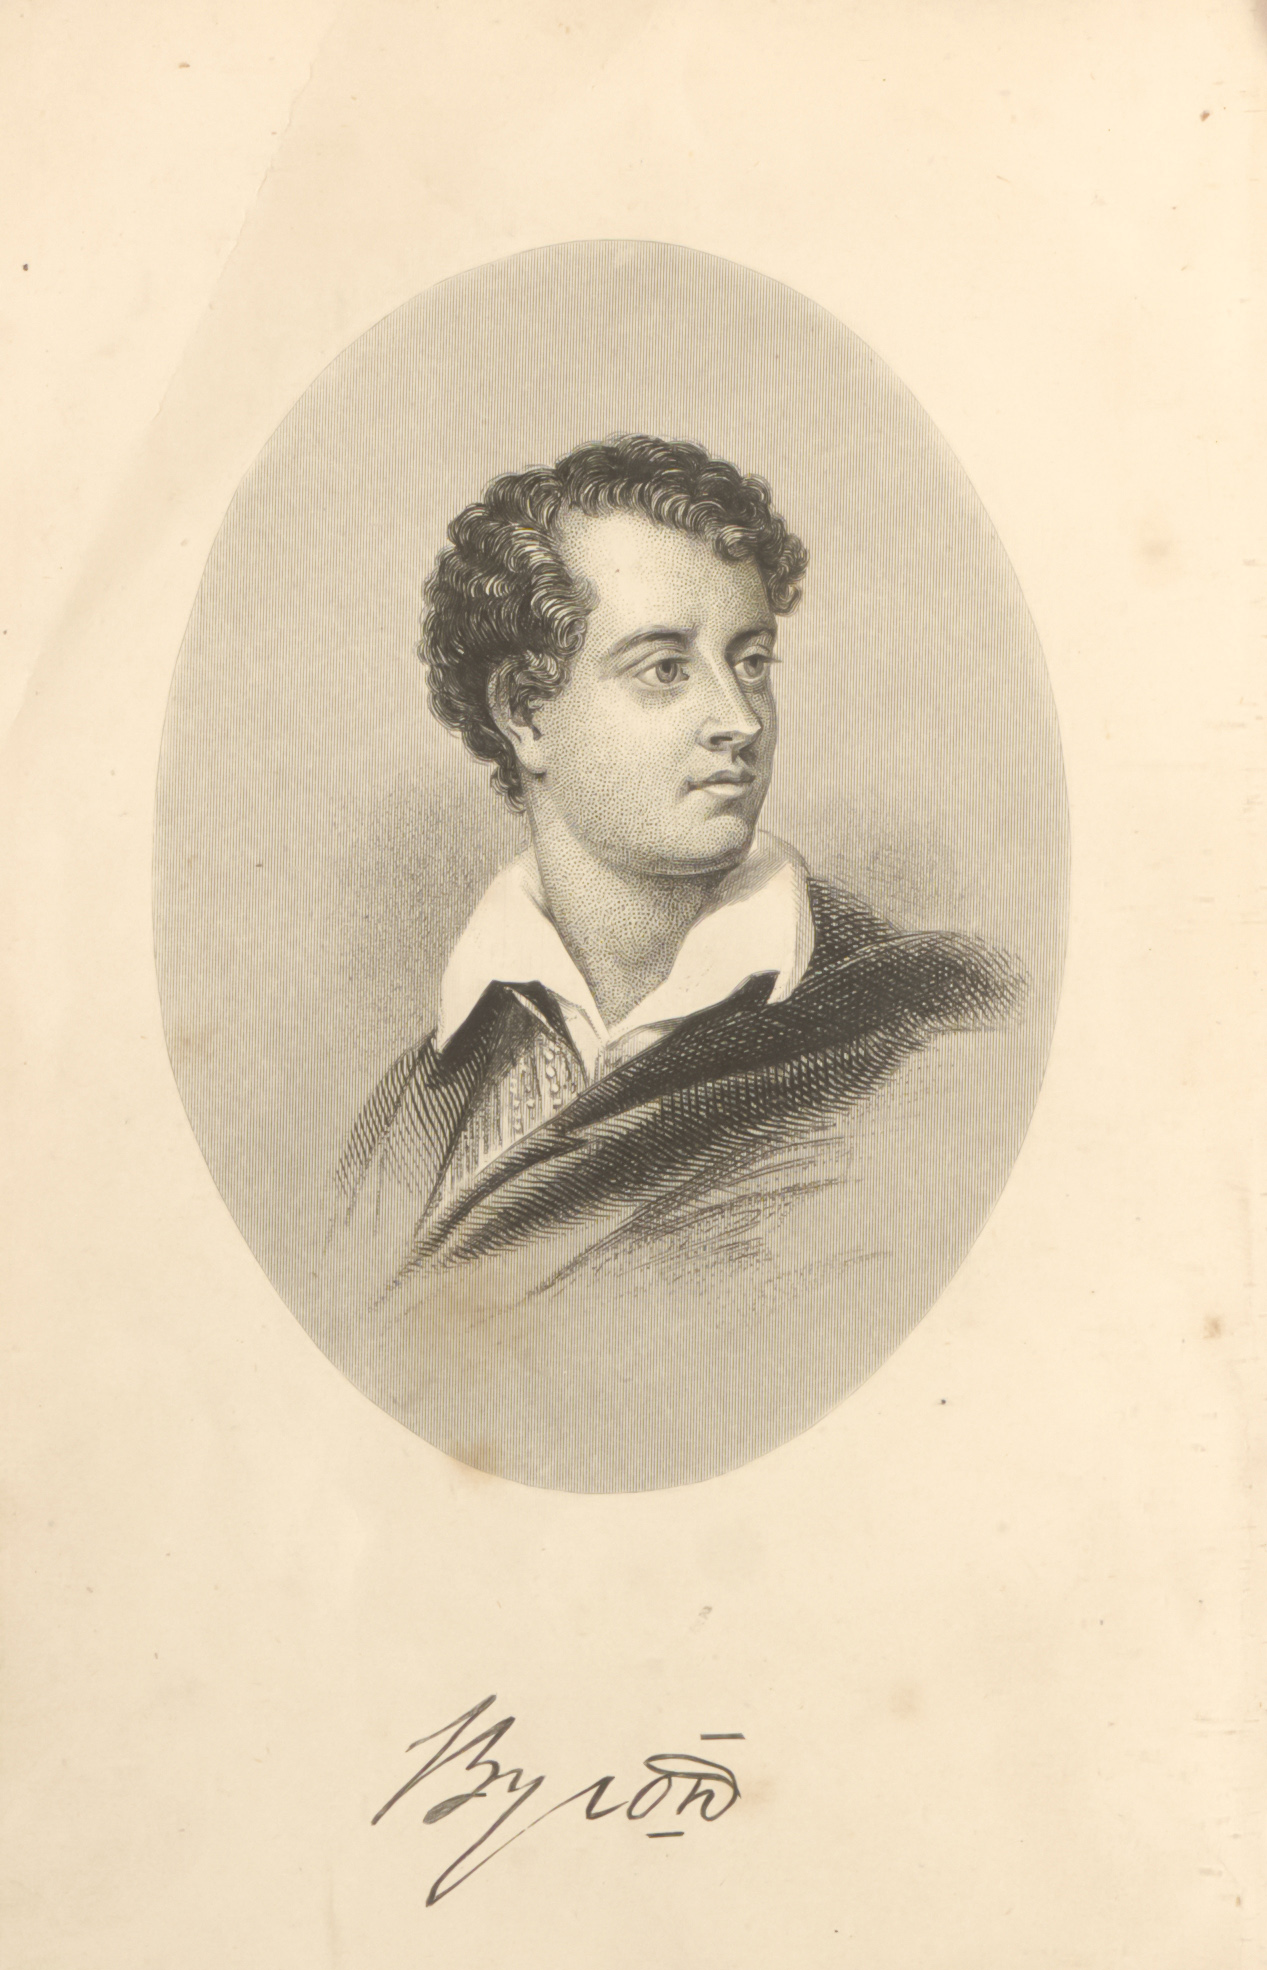 Portrait of Byron in a oval circle